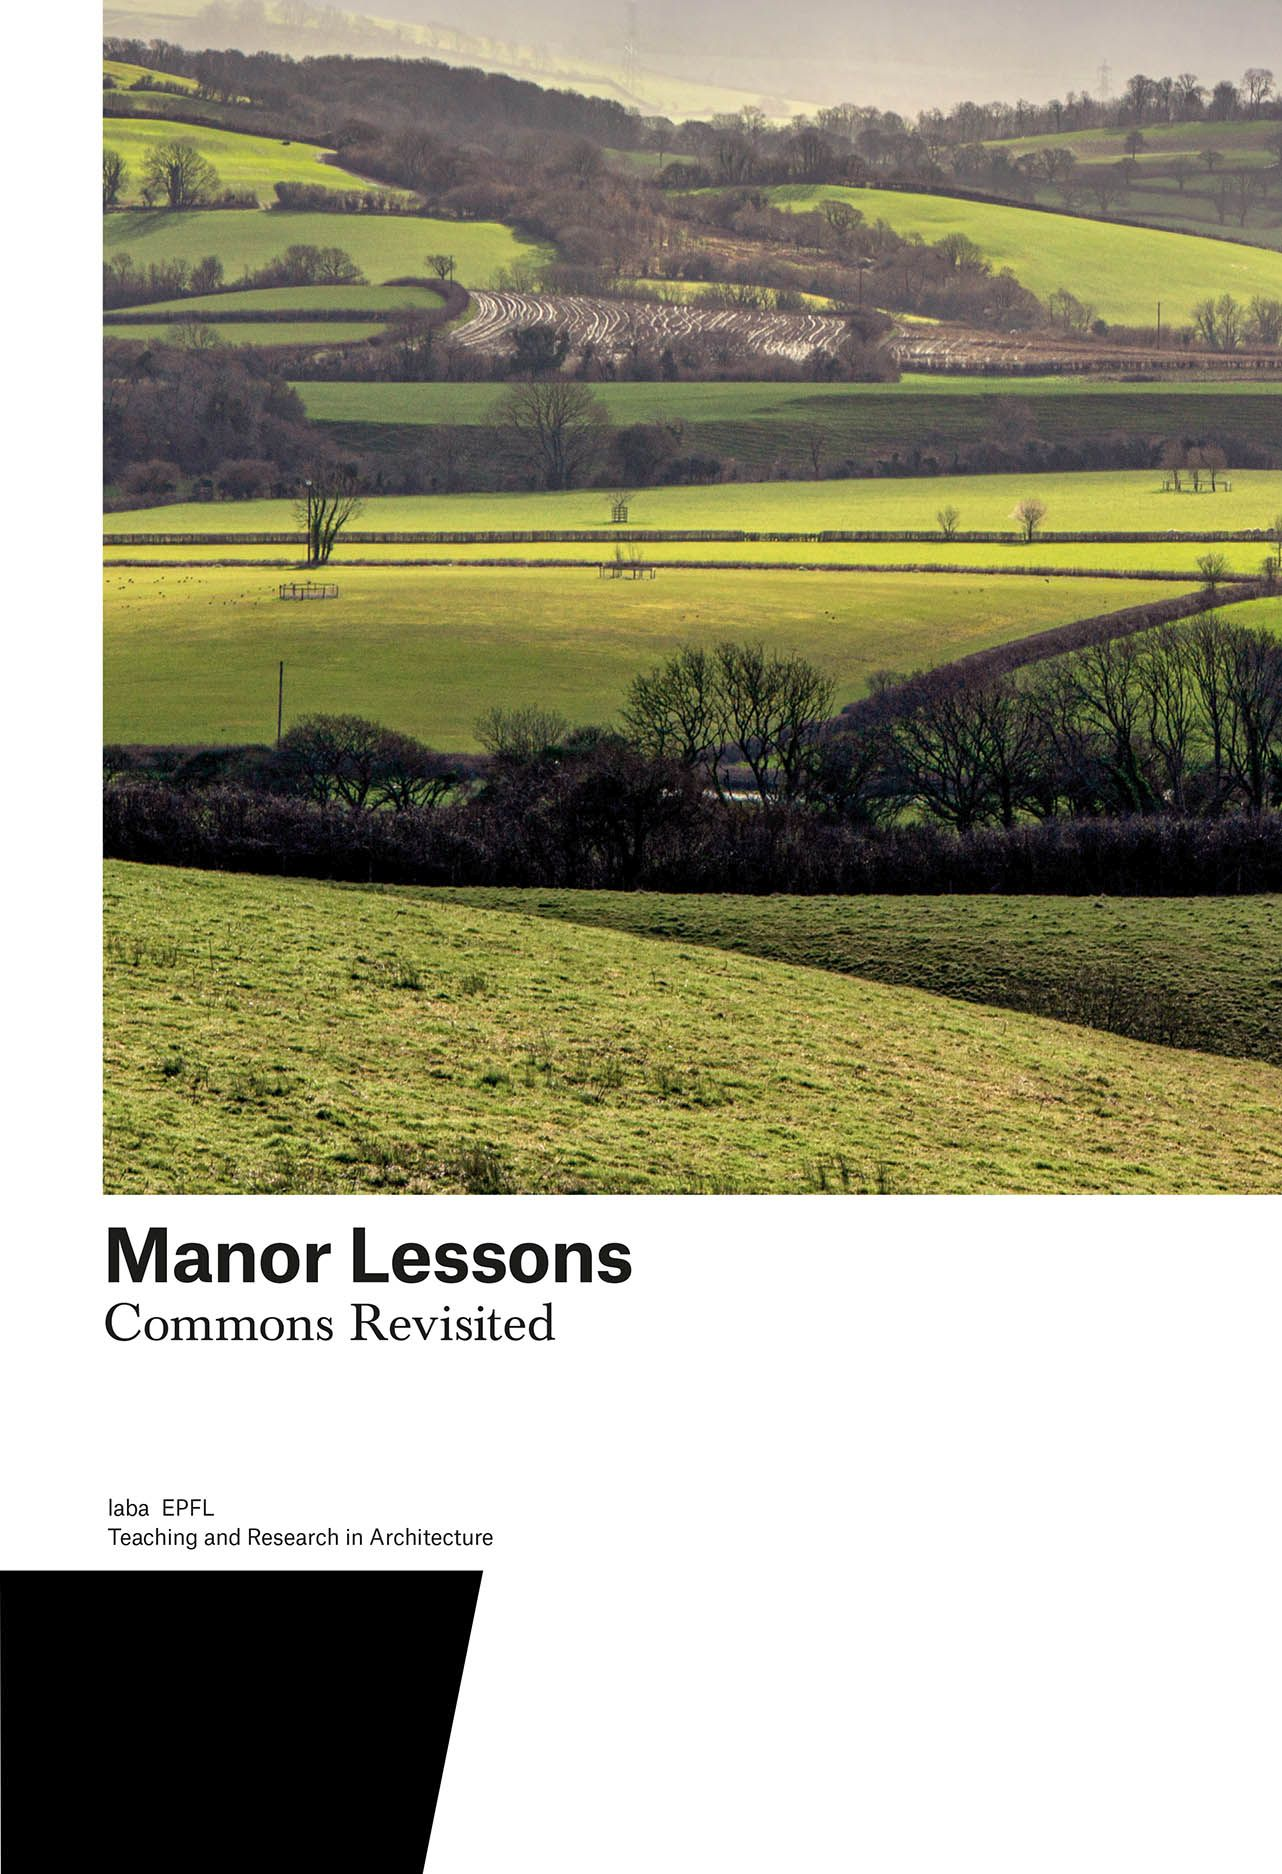 Manor Lessons: Commons Revisited. Teaching and Research in Architecture